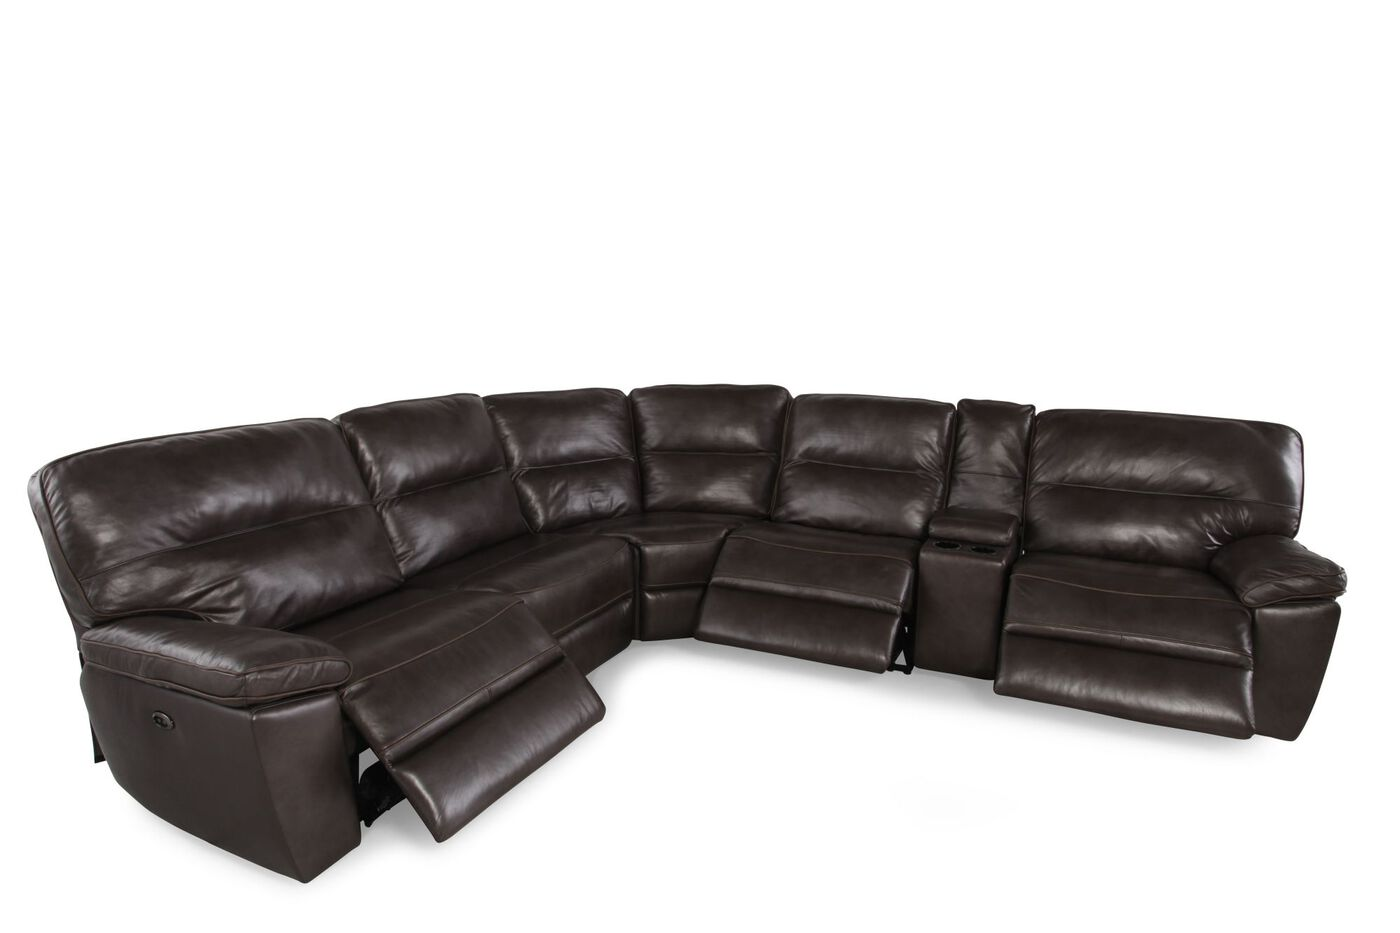 Six-Piece Contemporary Leather Reclining Sectional in Dark Gray ...